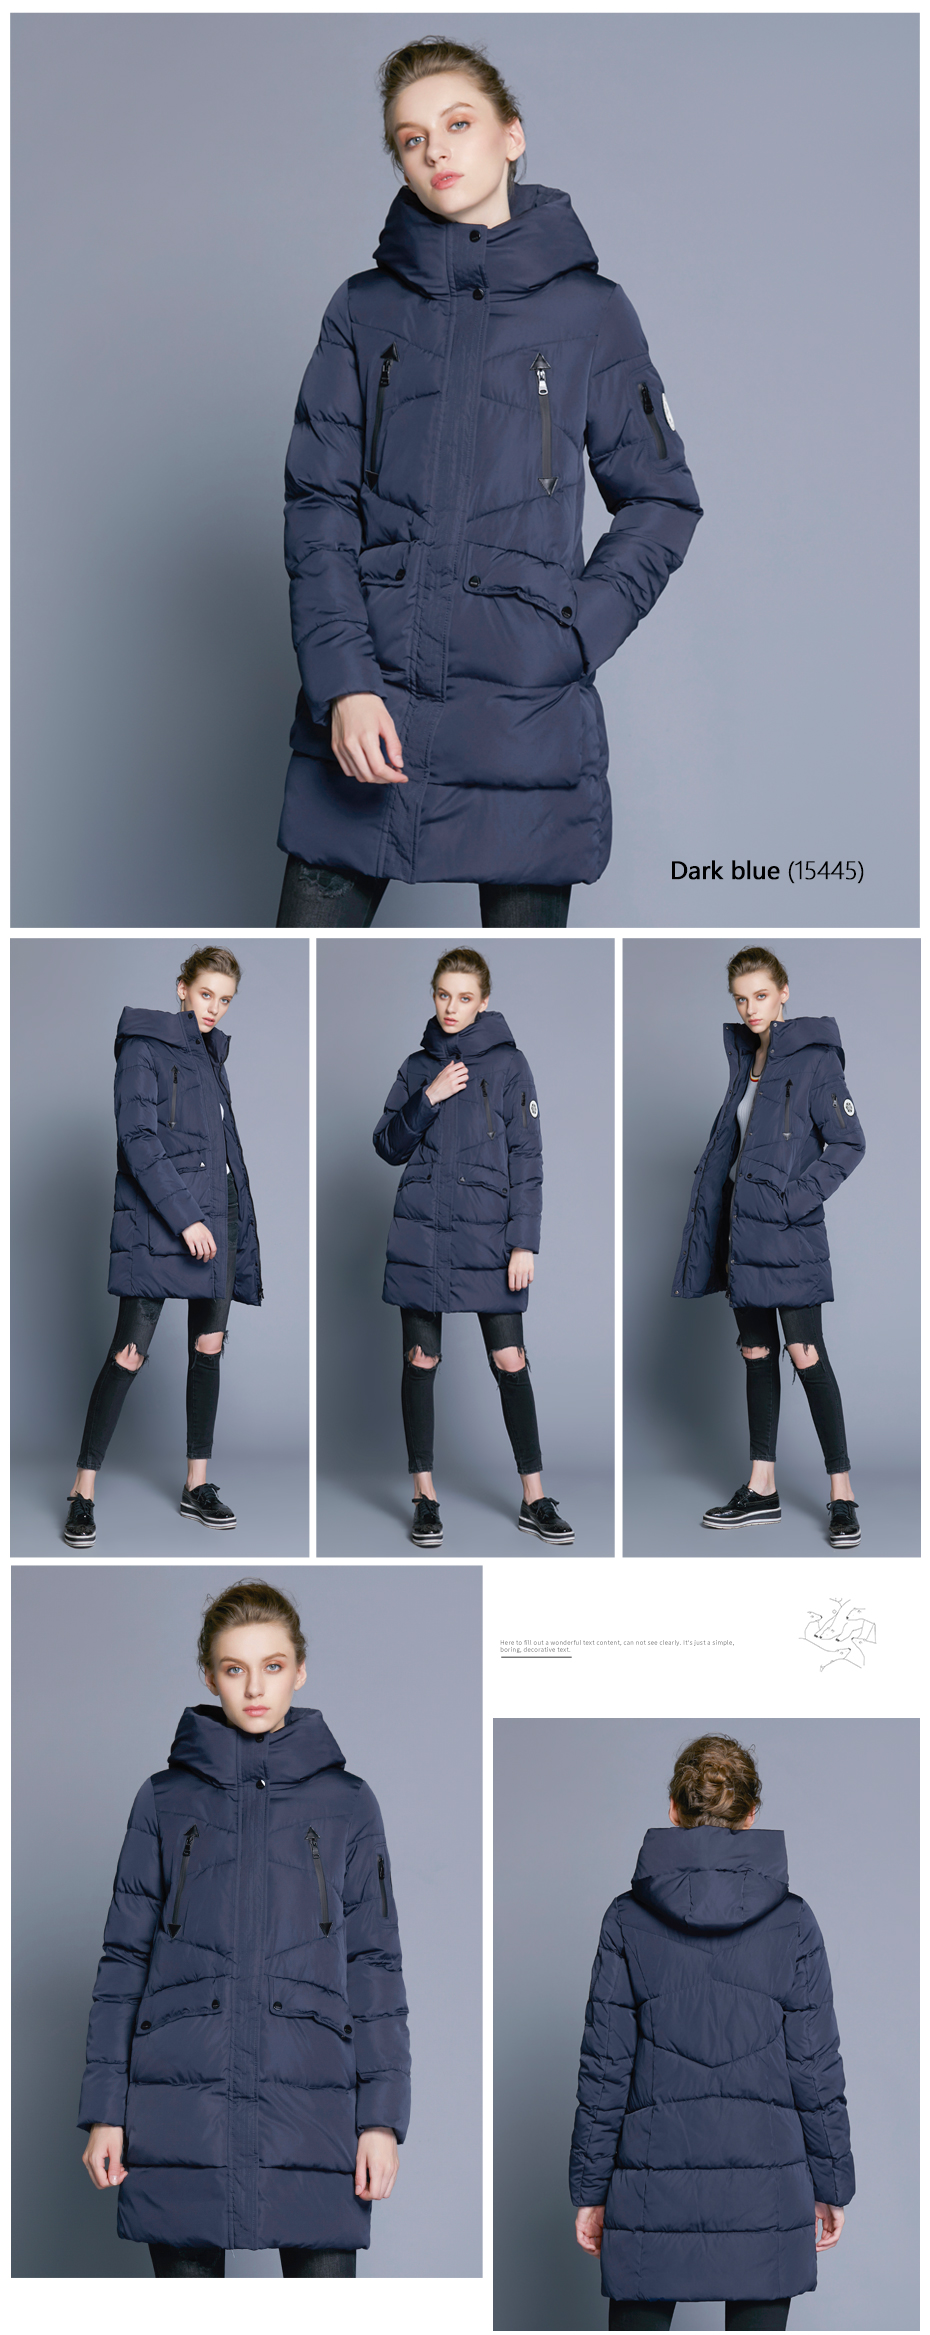 ICEbear 19 New Women Winter Jacket Coat Slim Winter Quilted Coat Long Style Hood Slim Parkas Thicken Outerwear B16G6155D 8